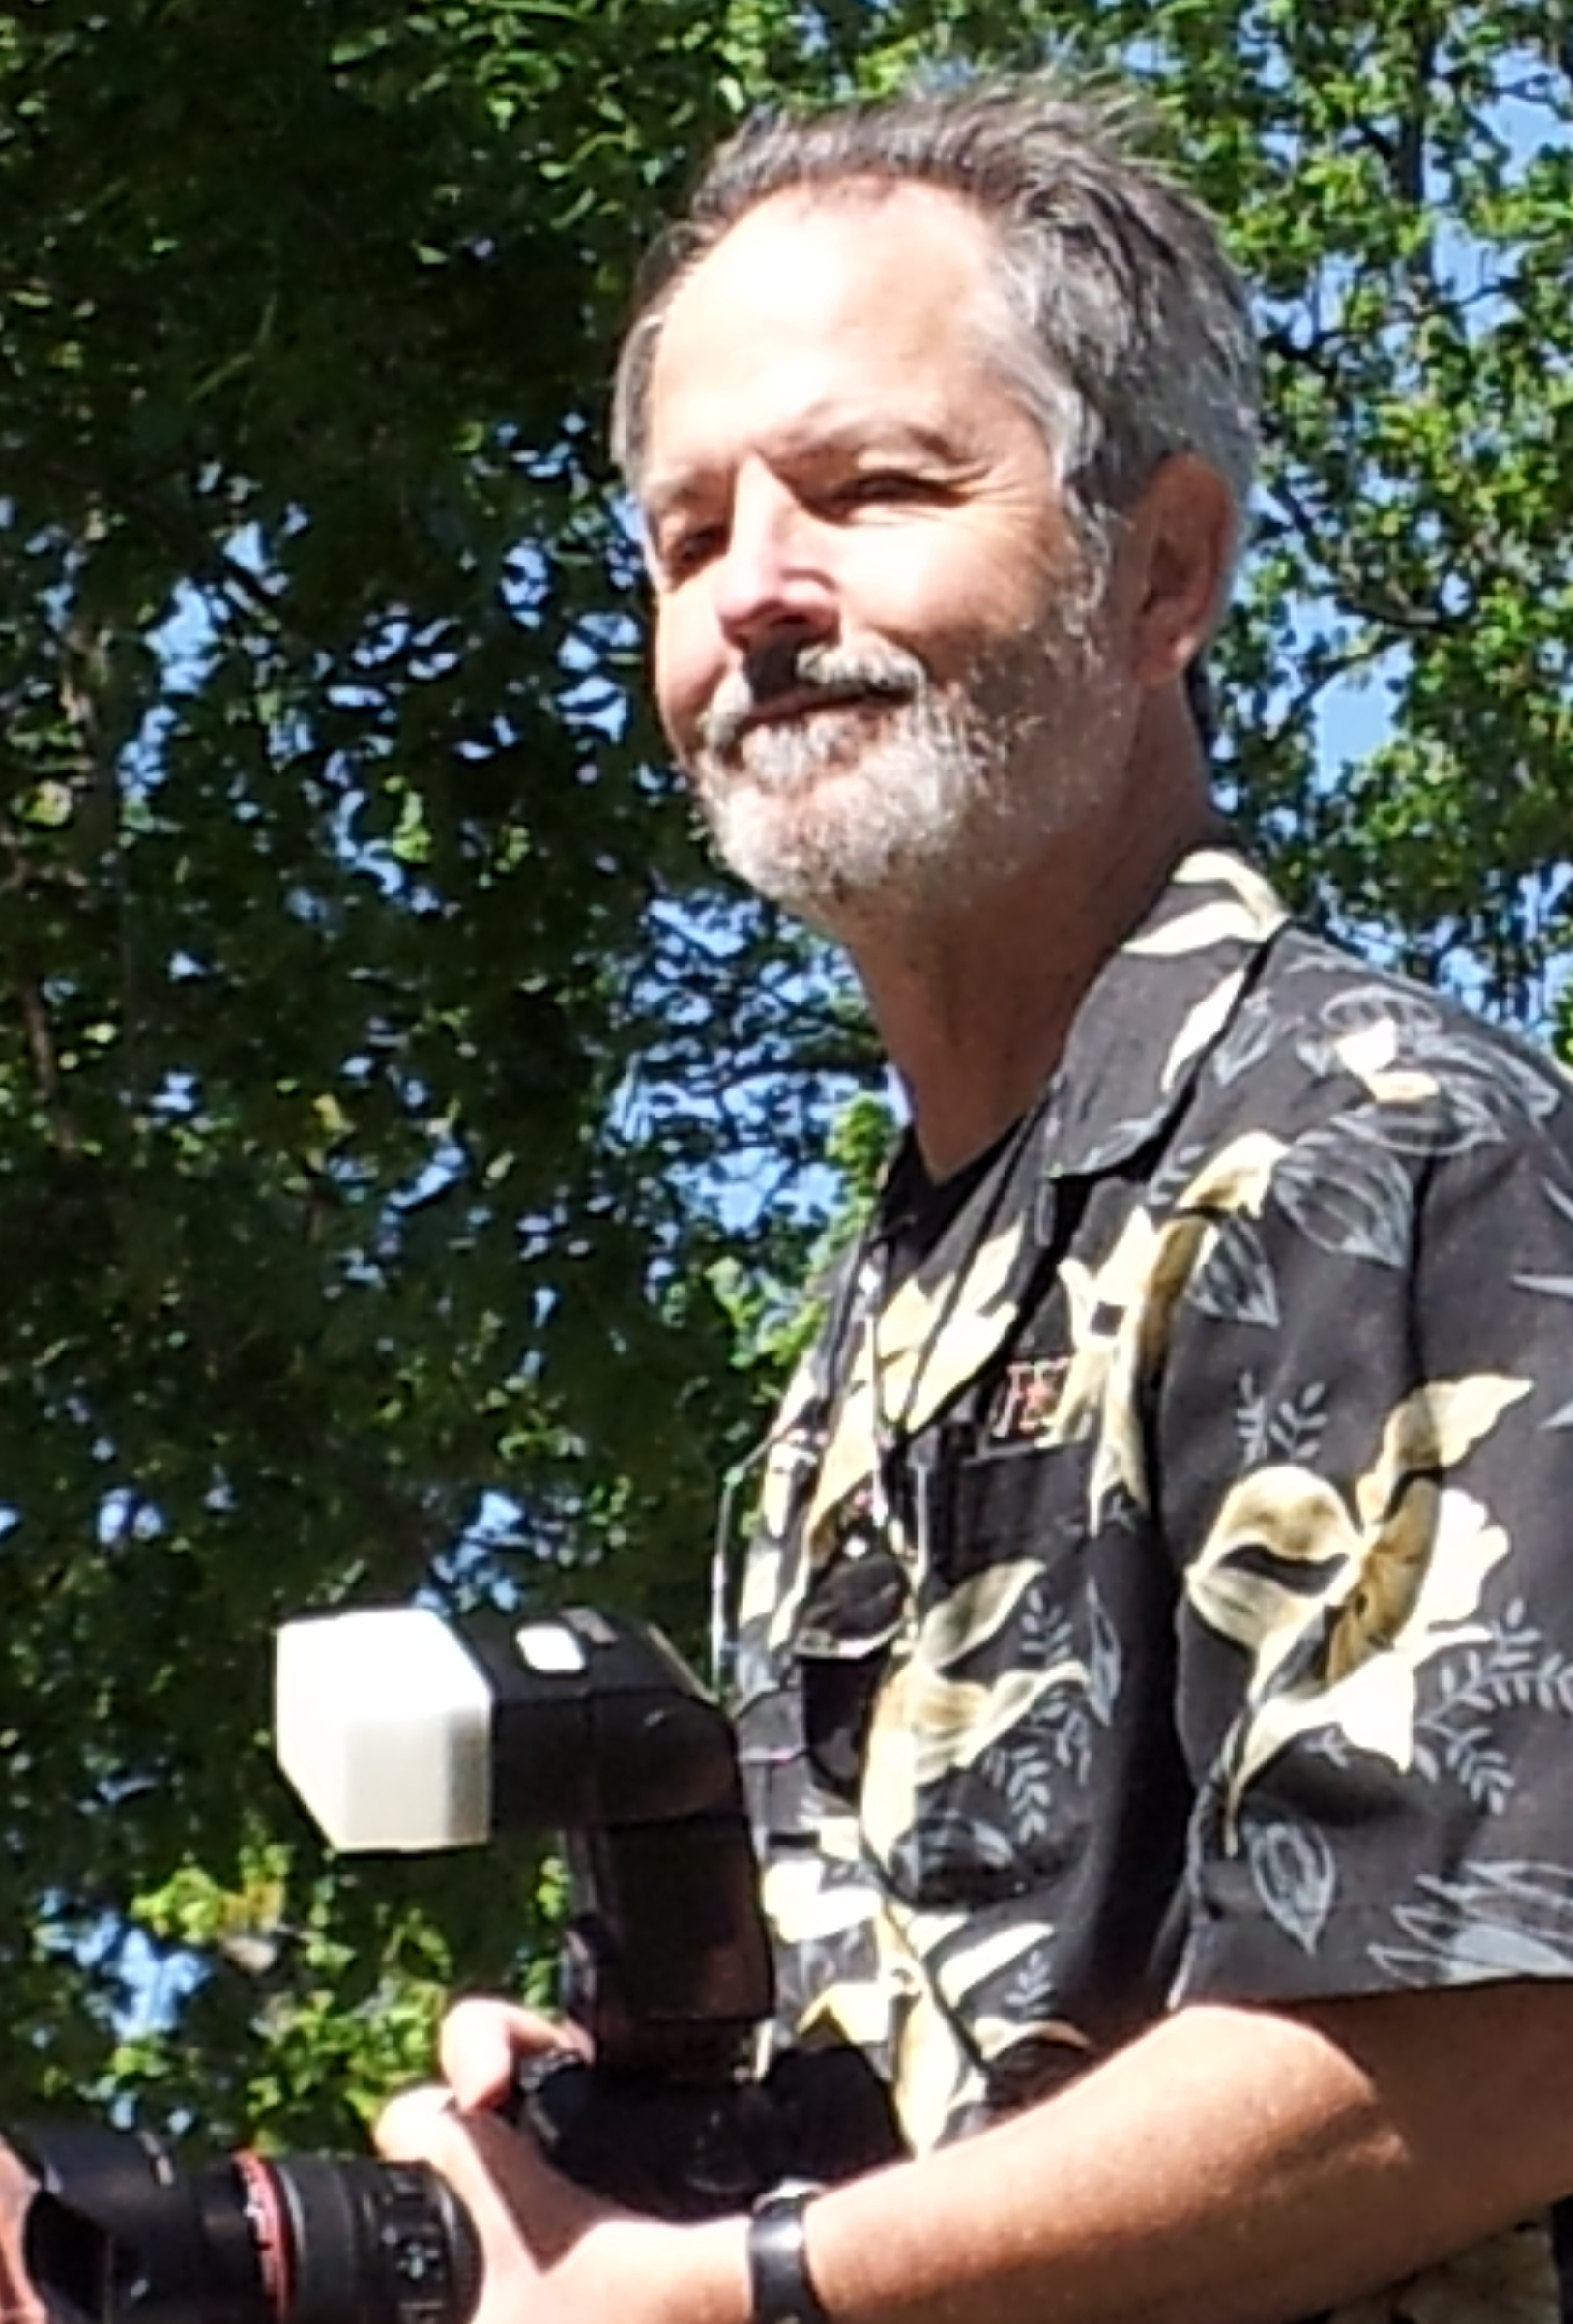 Image of Alan Pogue from Wikidata